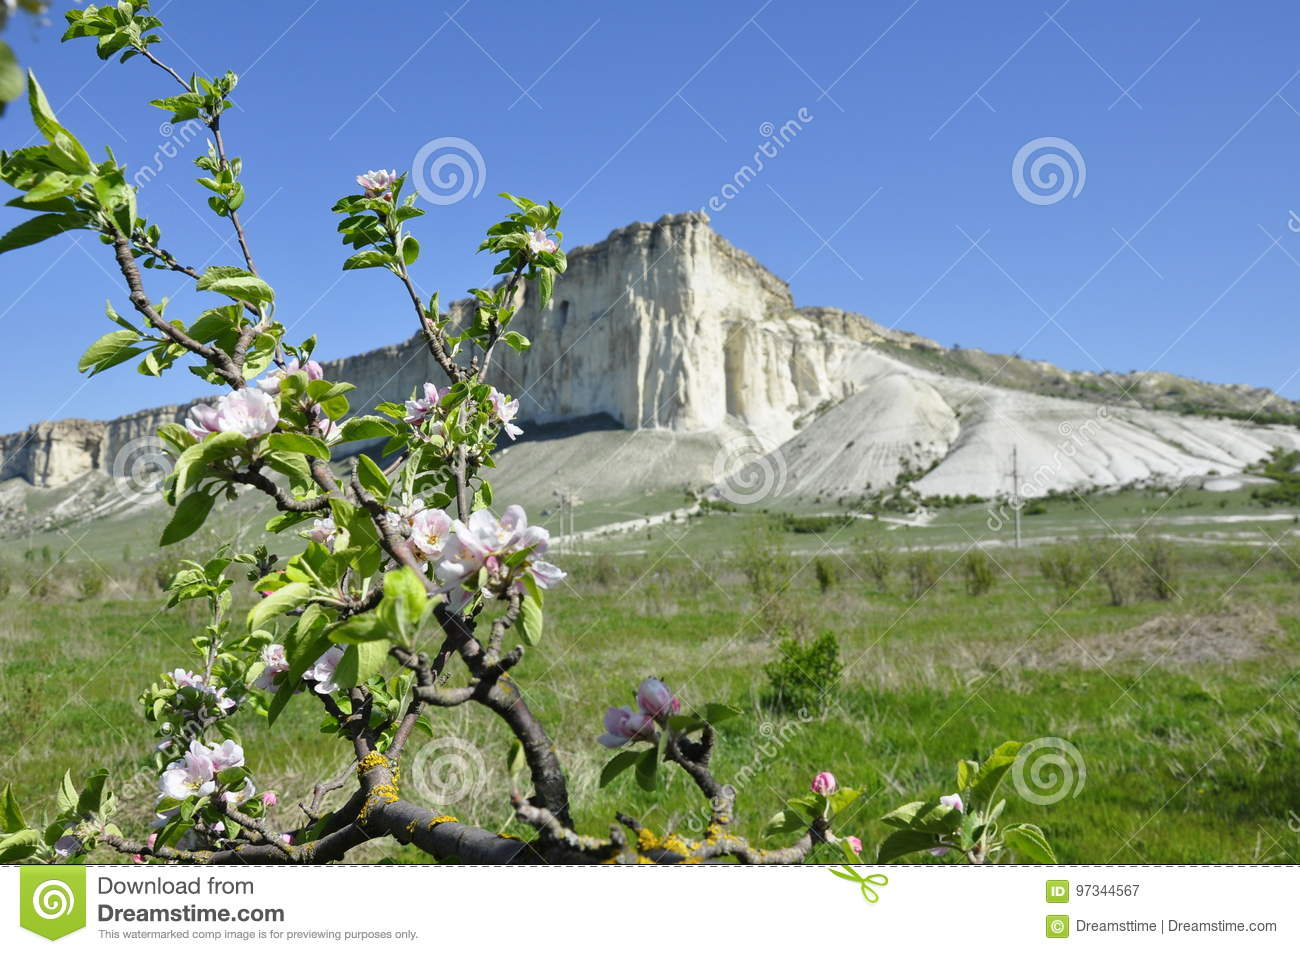 White Rock In Crimea Blooming Flowers Stock Image Image Of Nature